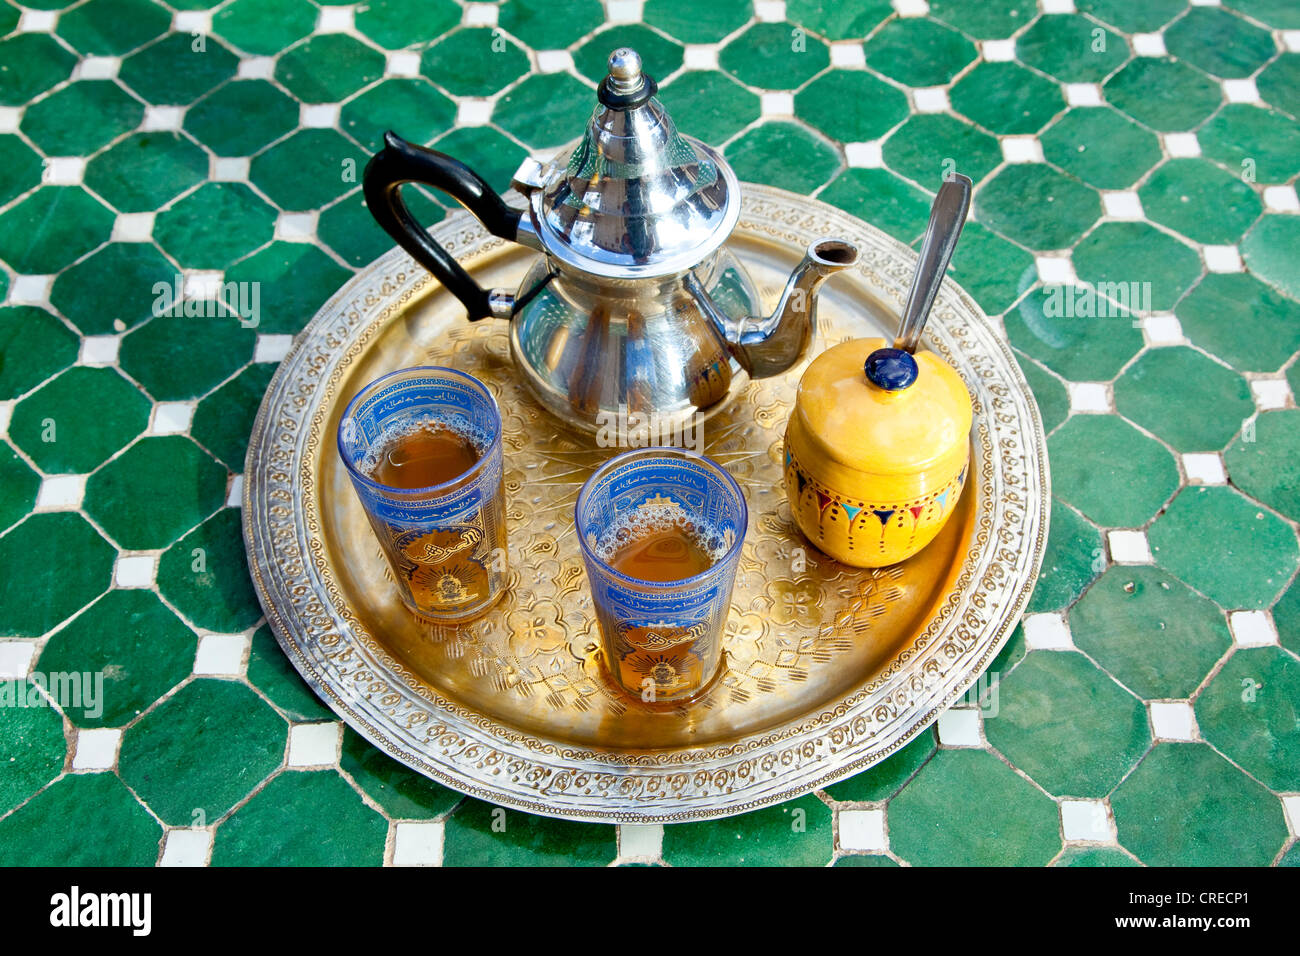 Silver tea pot with mint tea and glasses on a mosaic table in Agdz, Morocco, Africa - Stock Image